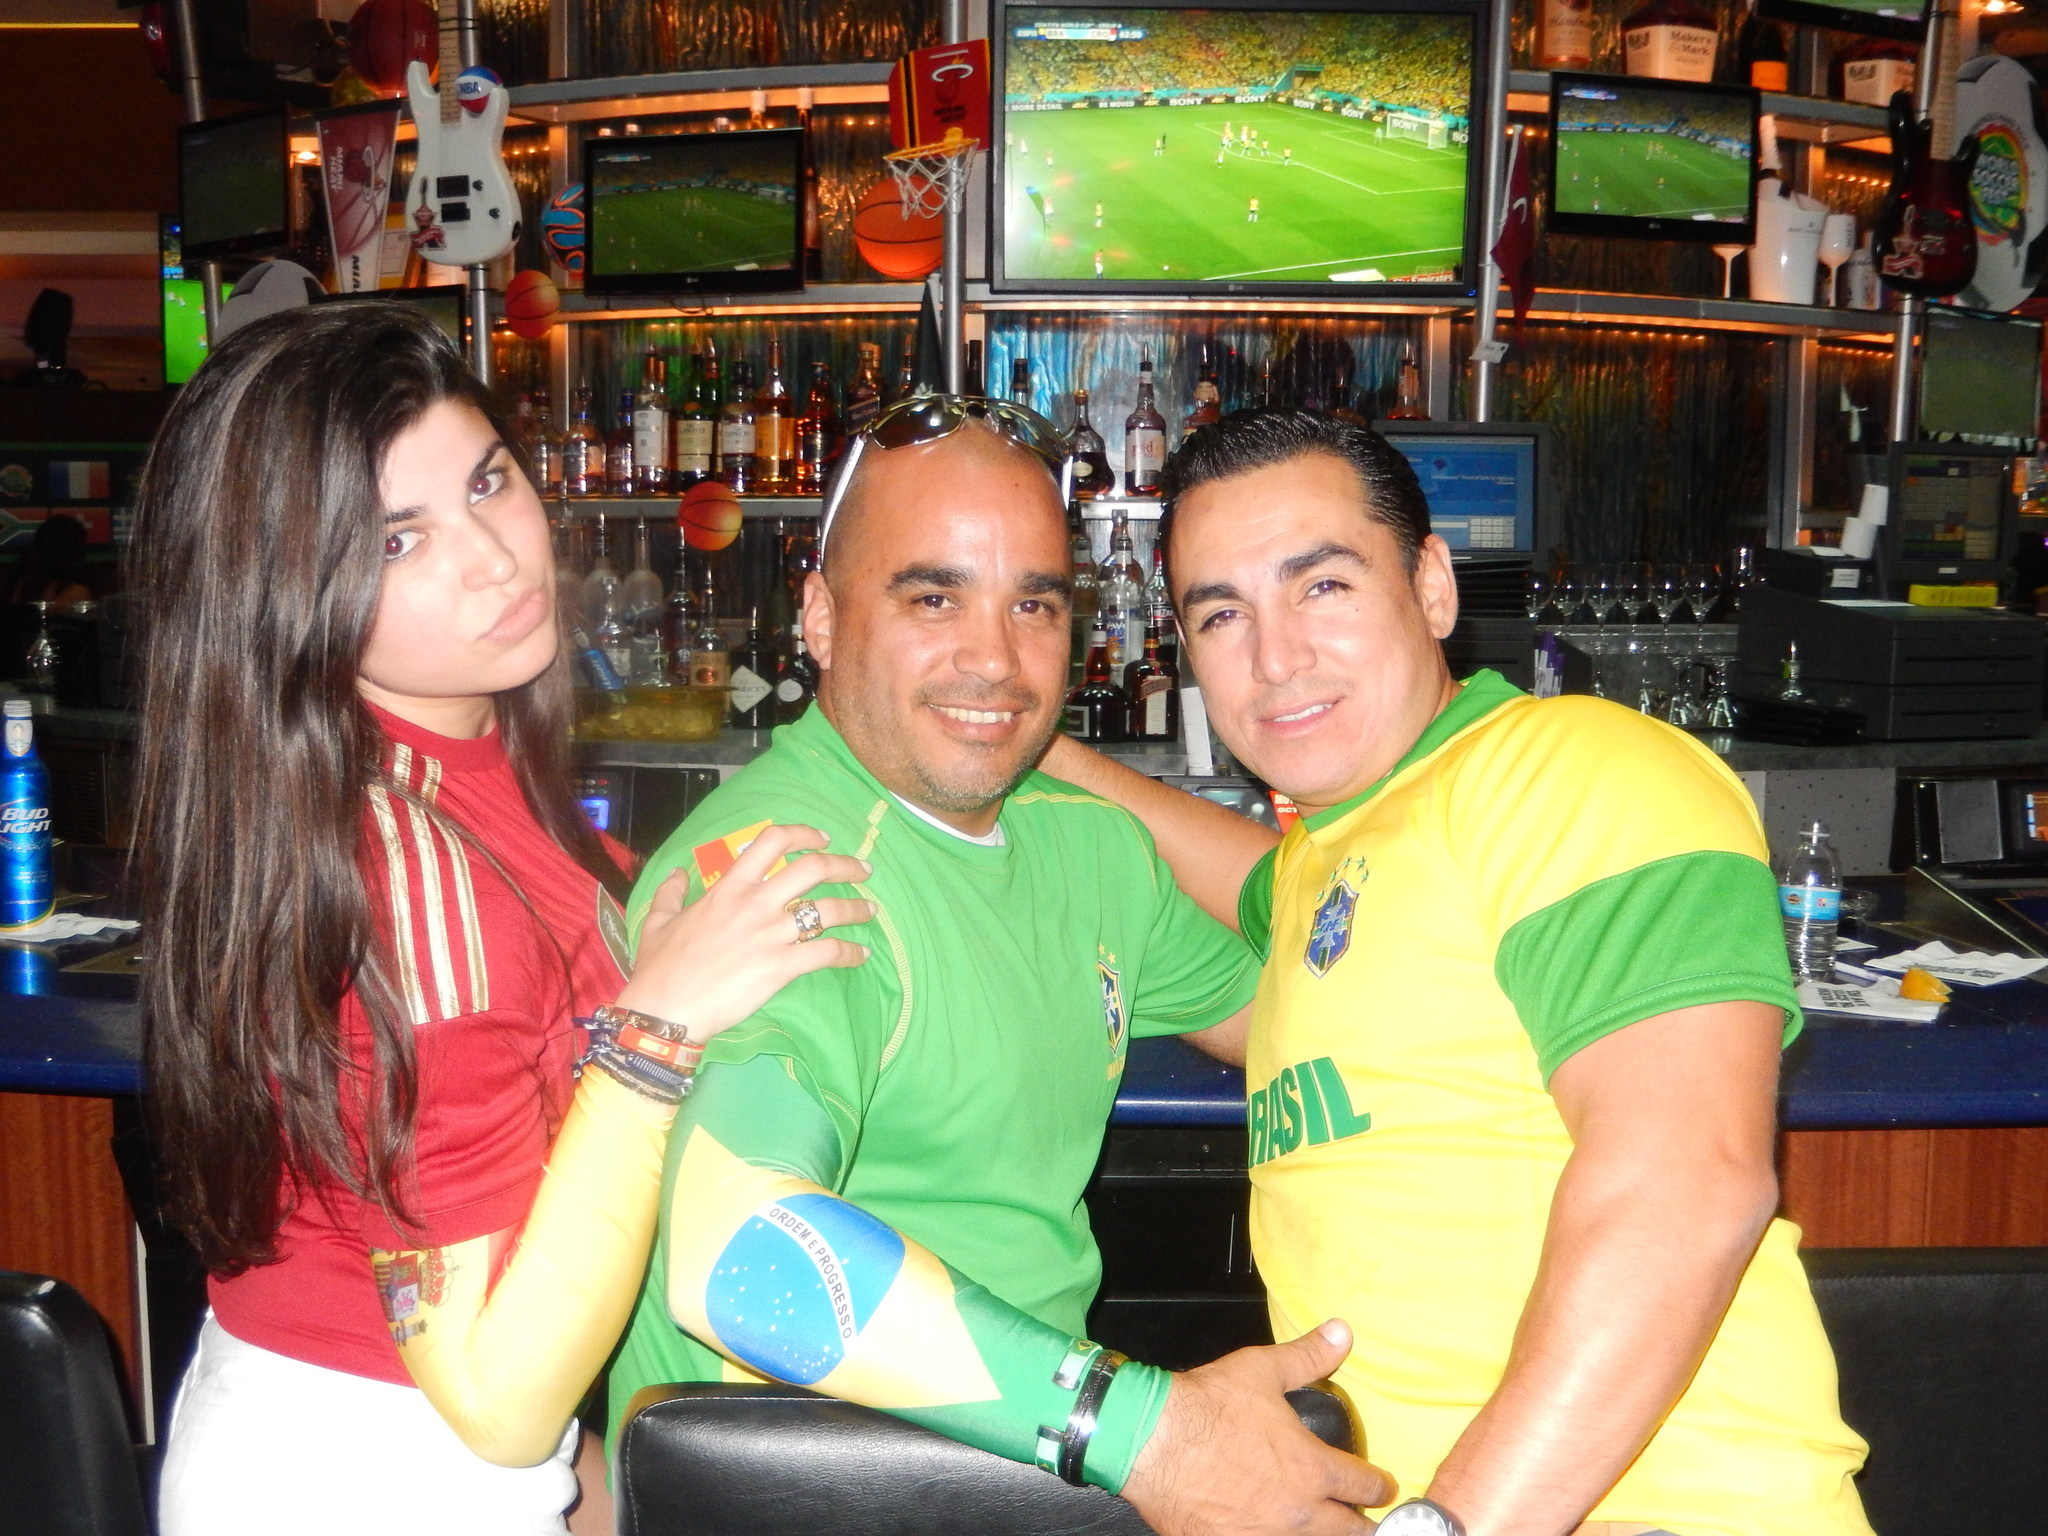 World Cup fans in South Florida - Pregame parade and watch party at Seminole Hard Rock Hotel & Casino in Hollywood.